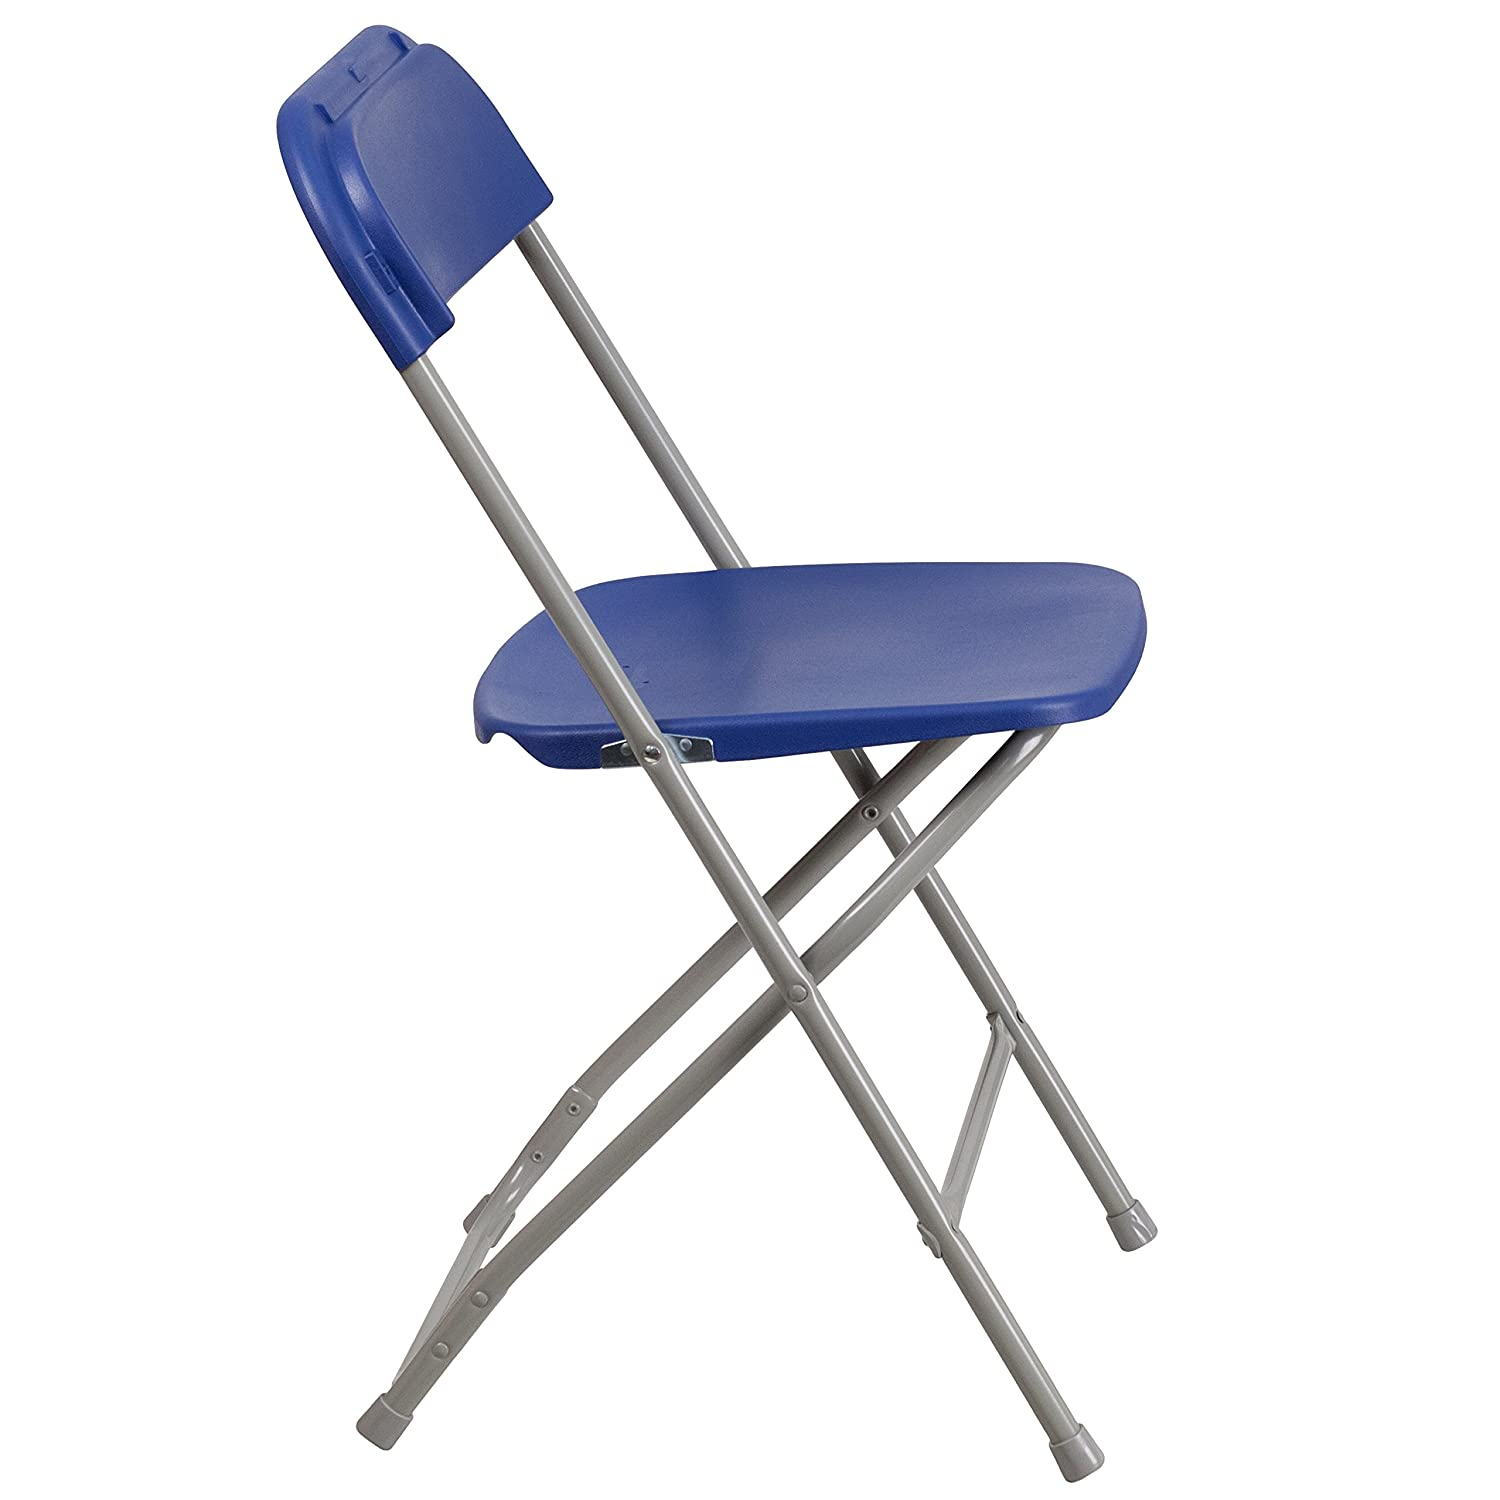 Outdoor Folding Chairs For Heavy People For Big Amp Heavy